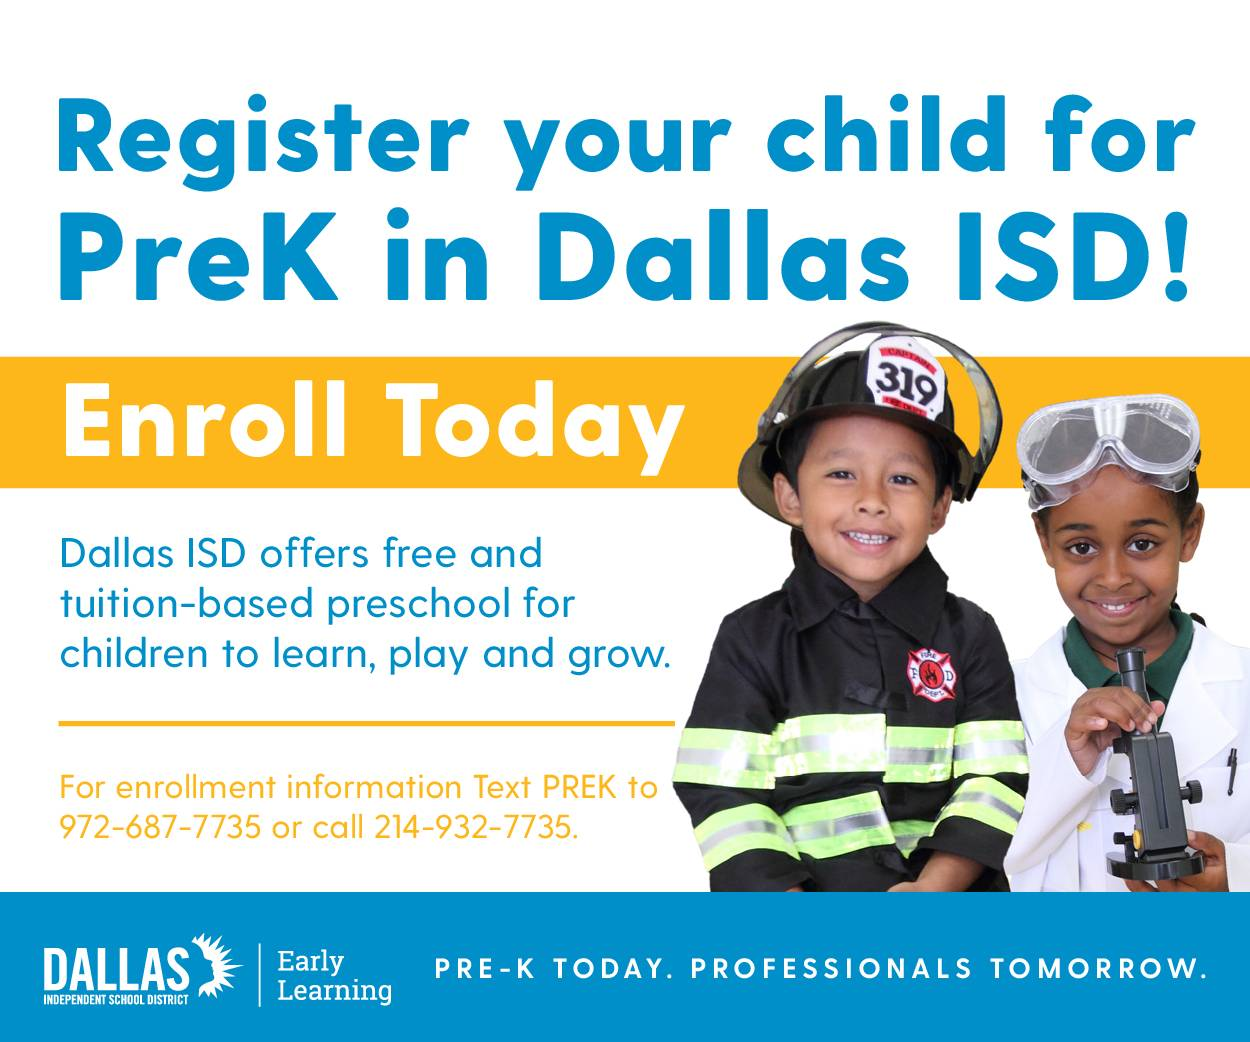 Register your child for PreK in Dallas ISD